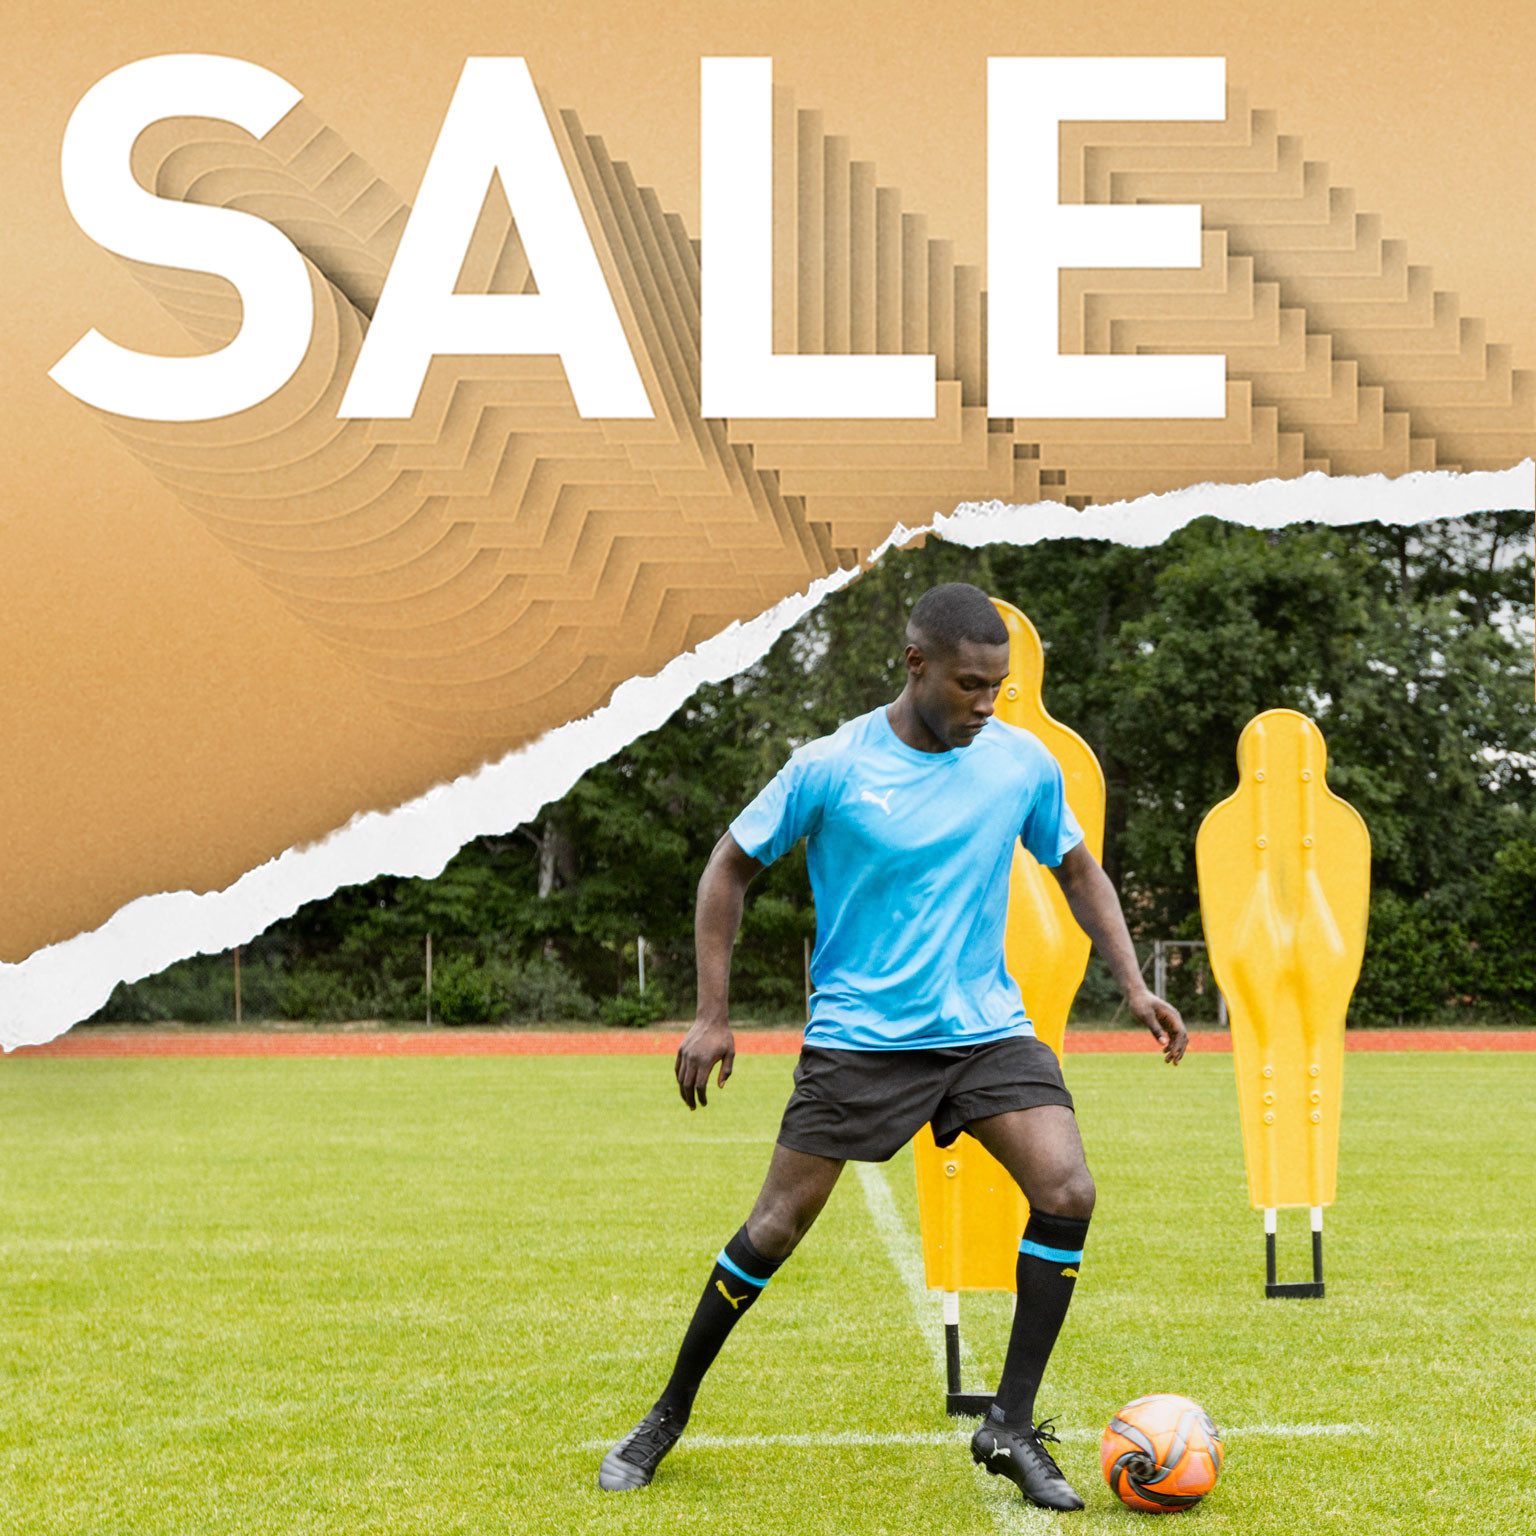 END OF SEASON SALE - Extra 20%